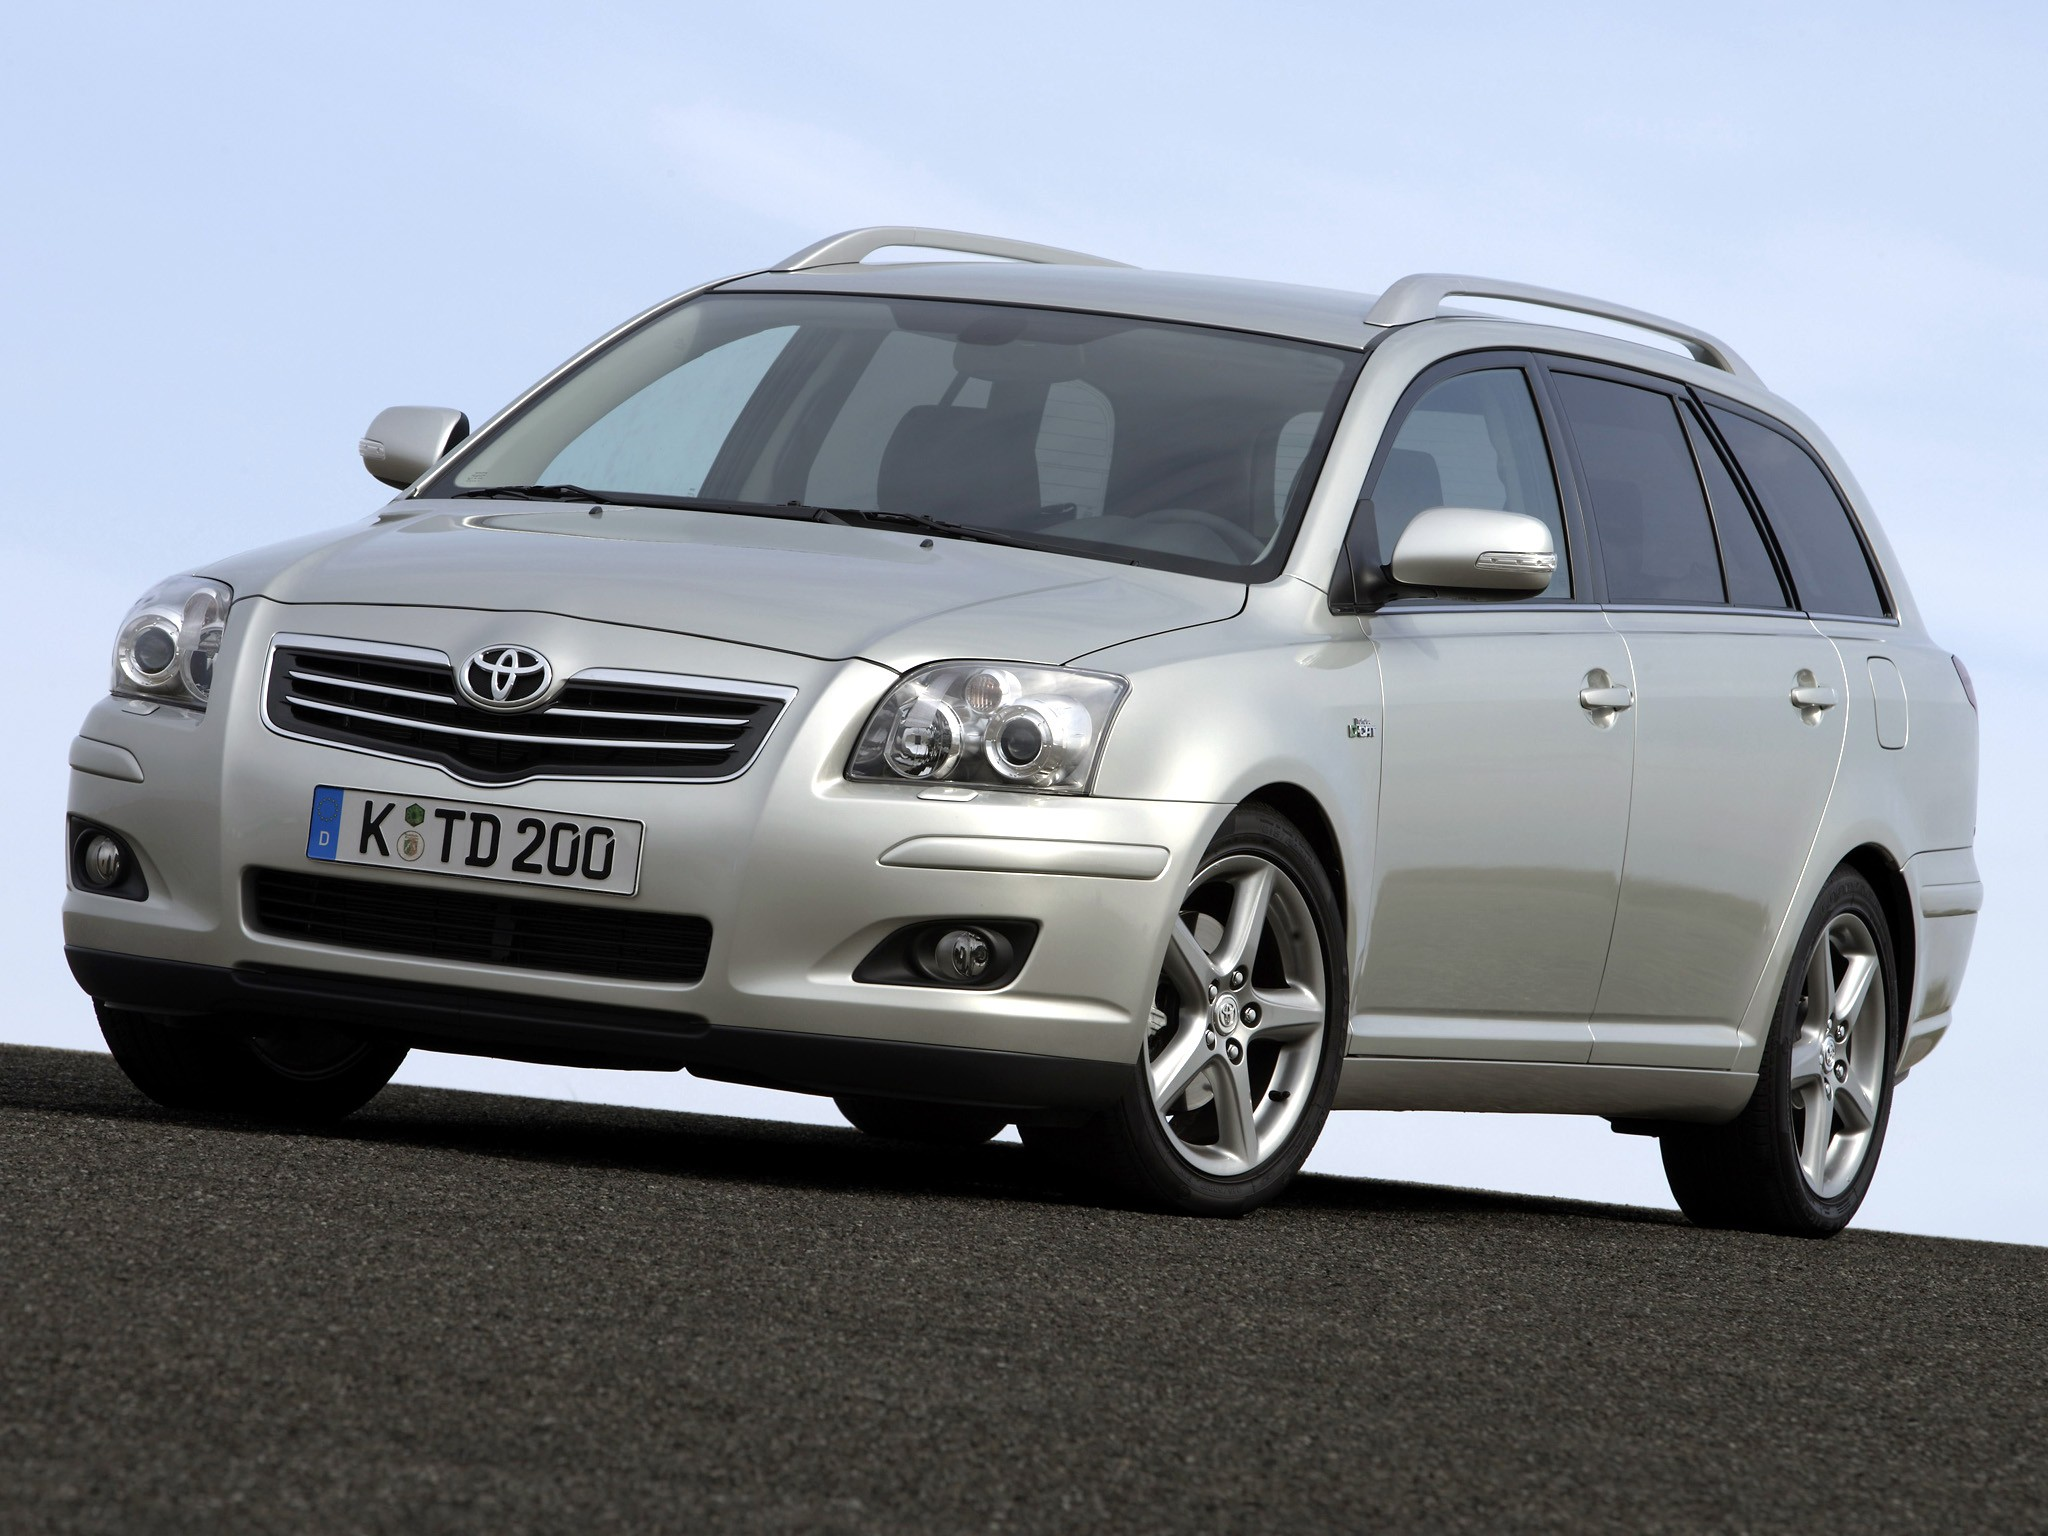 toyota avensis i restyling 2000 2003 station wagon 5 door rh carsot com 2006 toyota avensis owners manual toyota avensis 2006 user manual pdf